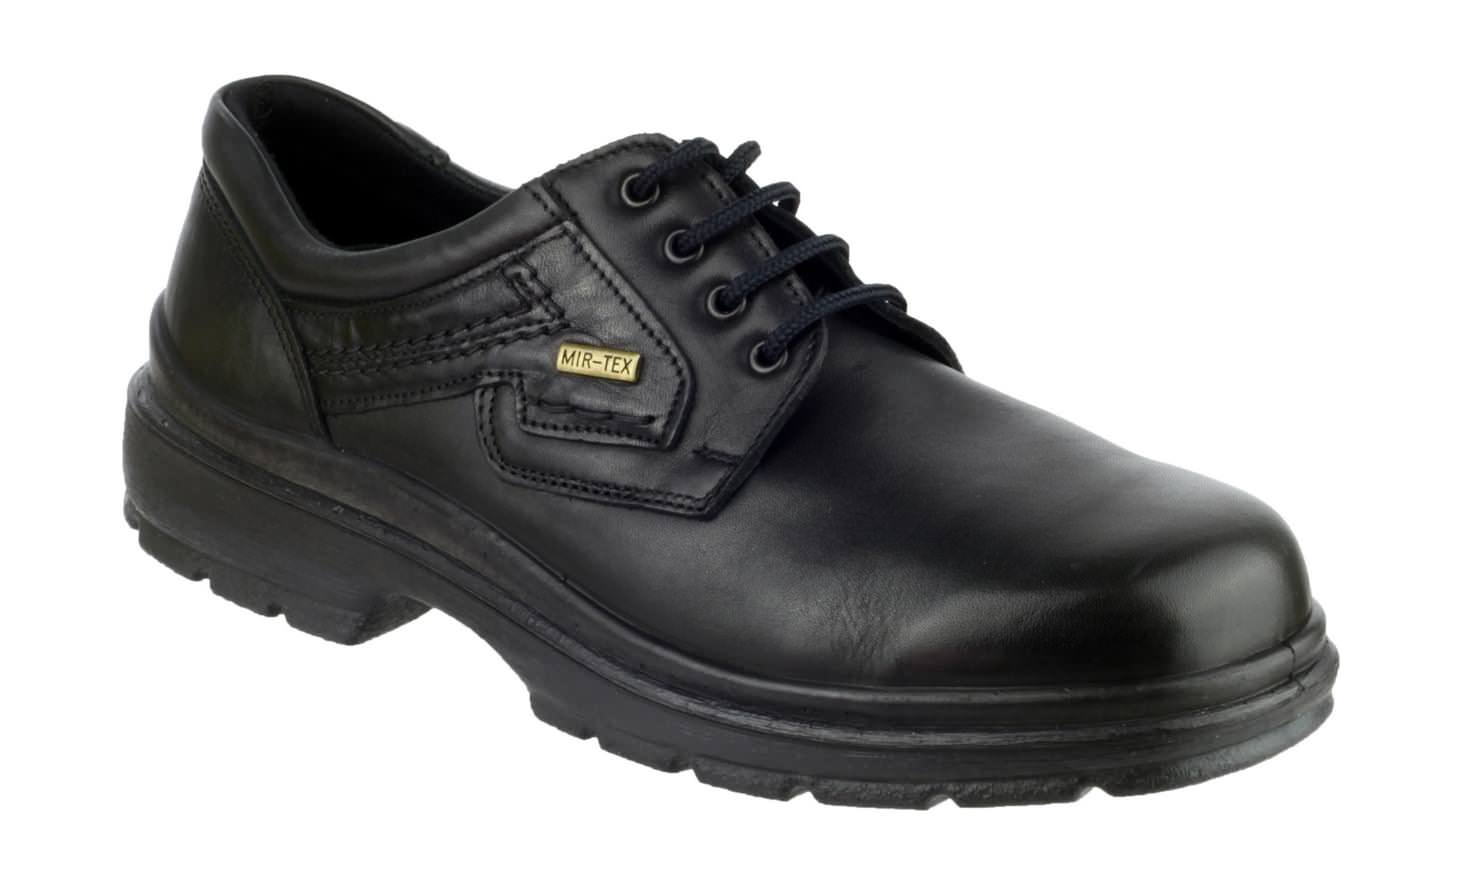 Cotswold Shipston Non-Safety Shoe